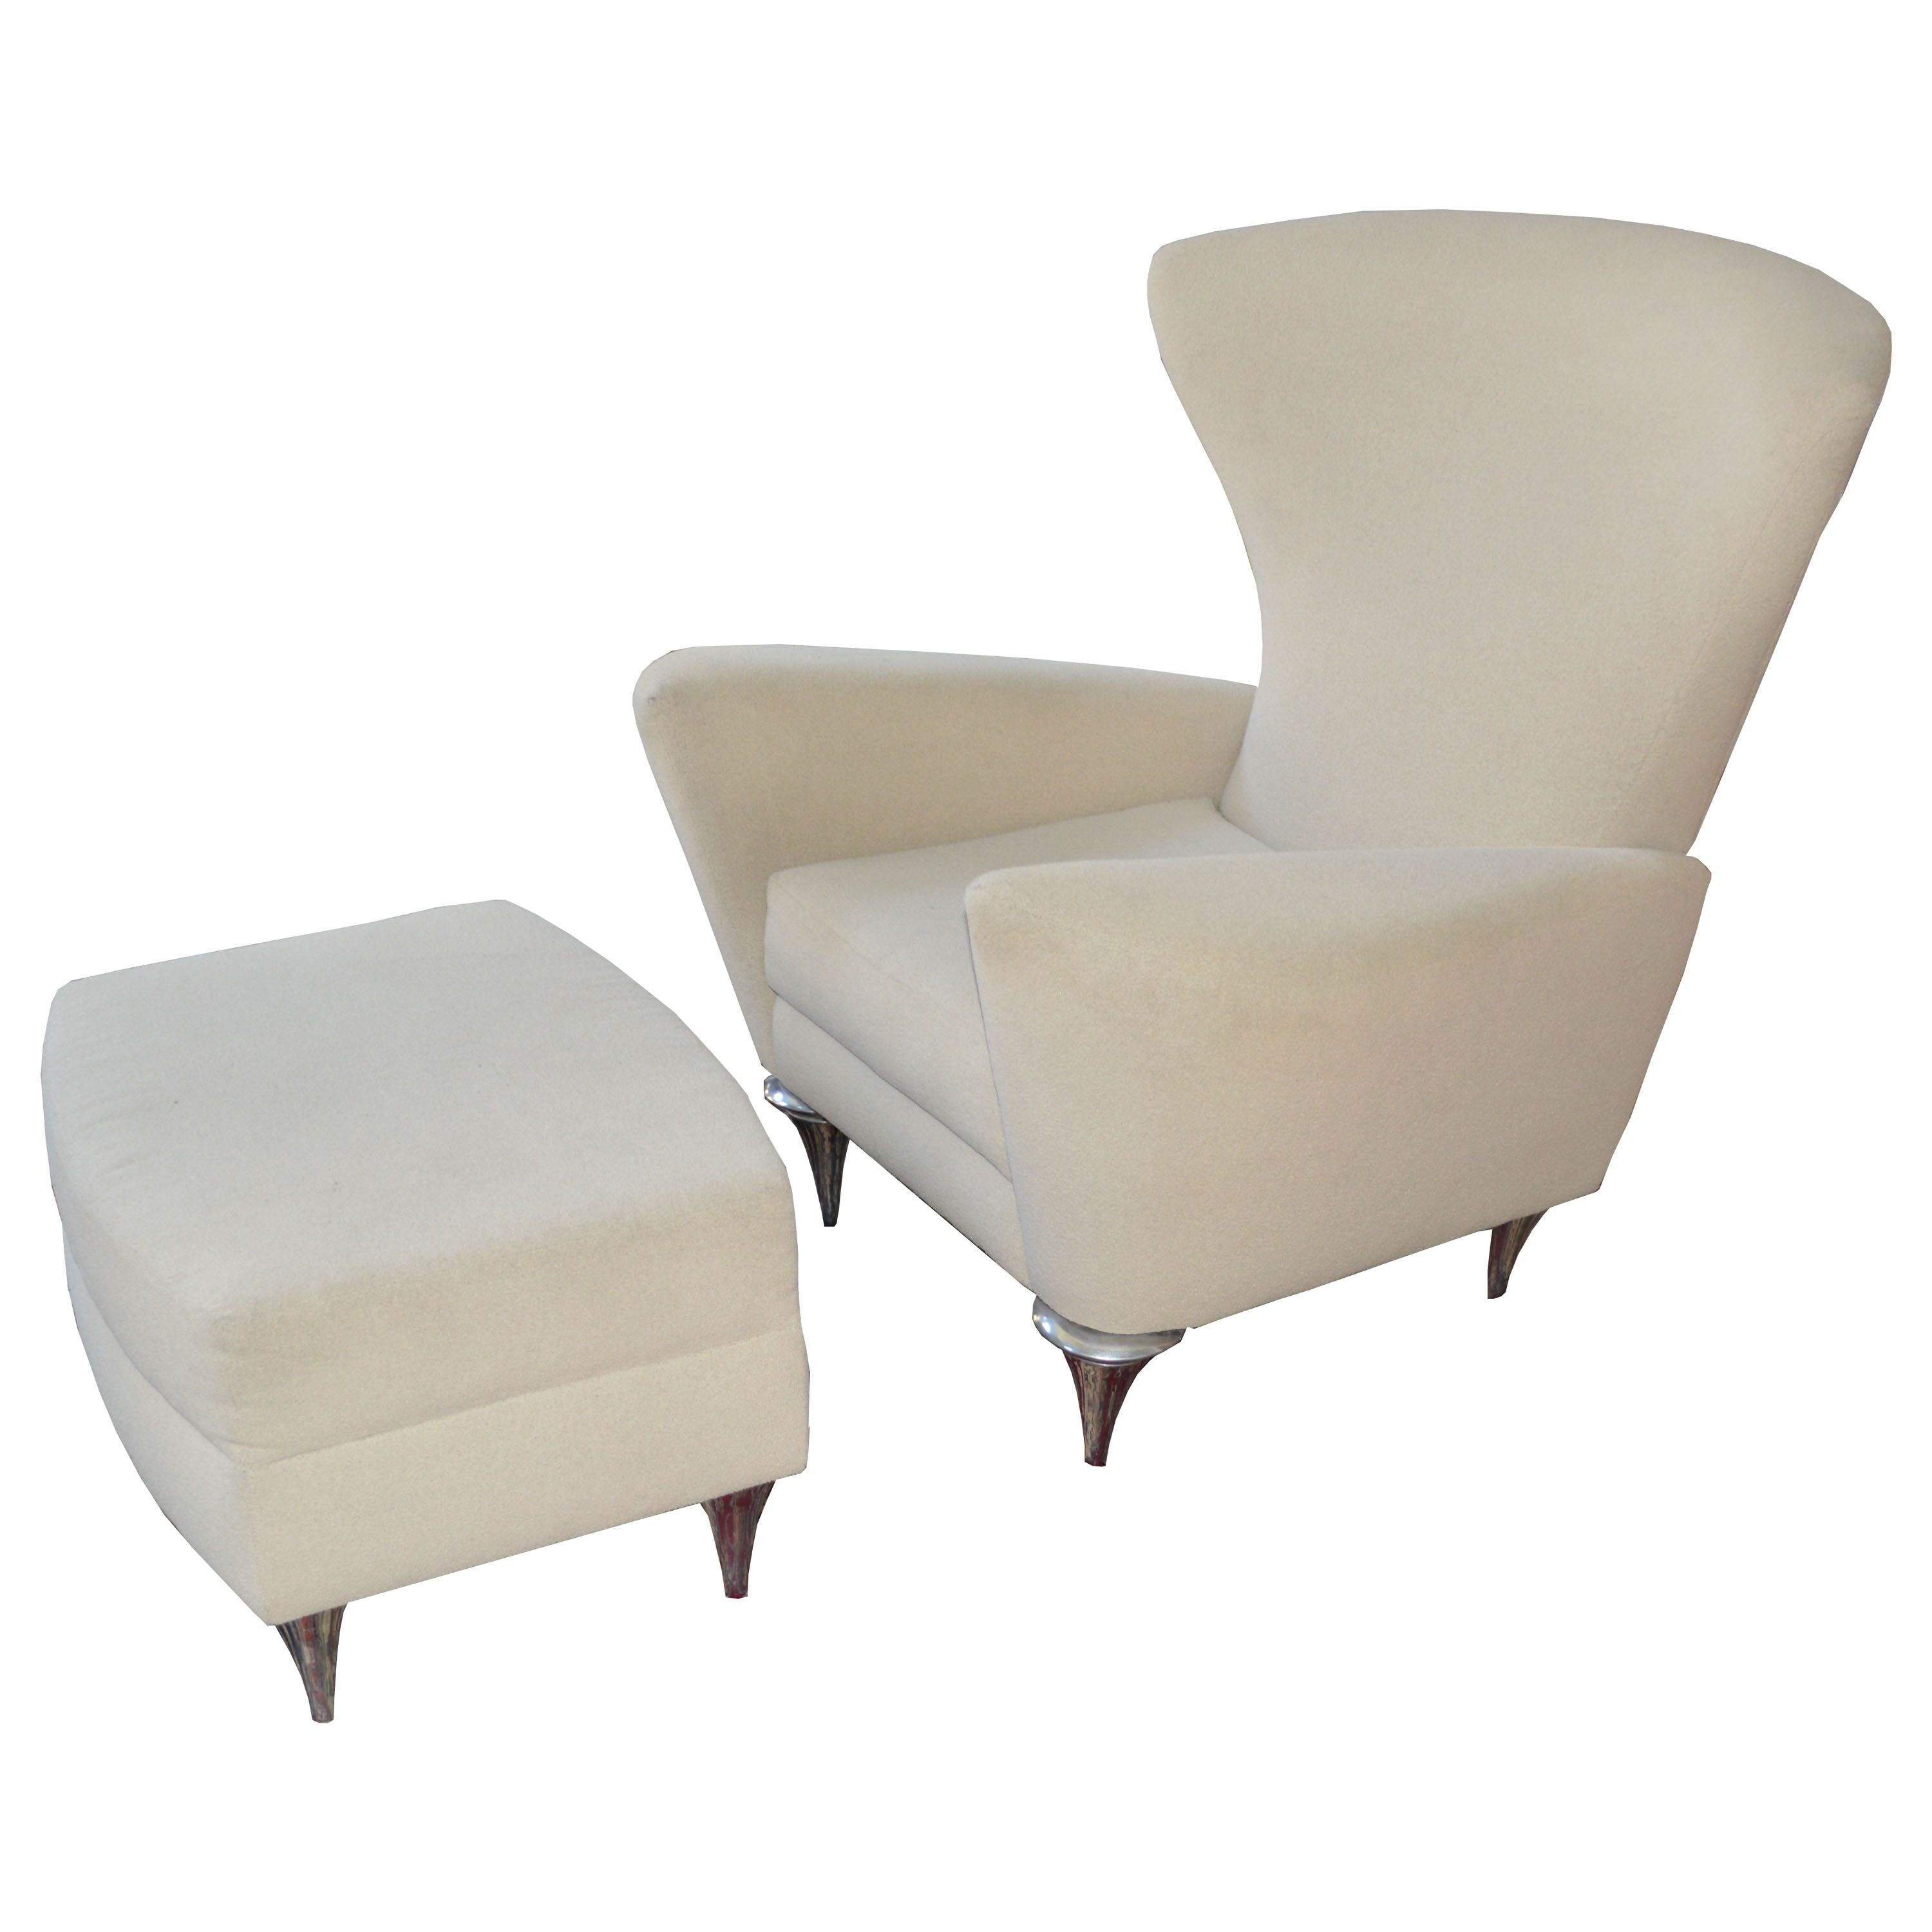 Contemporary Modern Lounge Chair and Ottoman by Theodore's